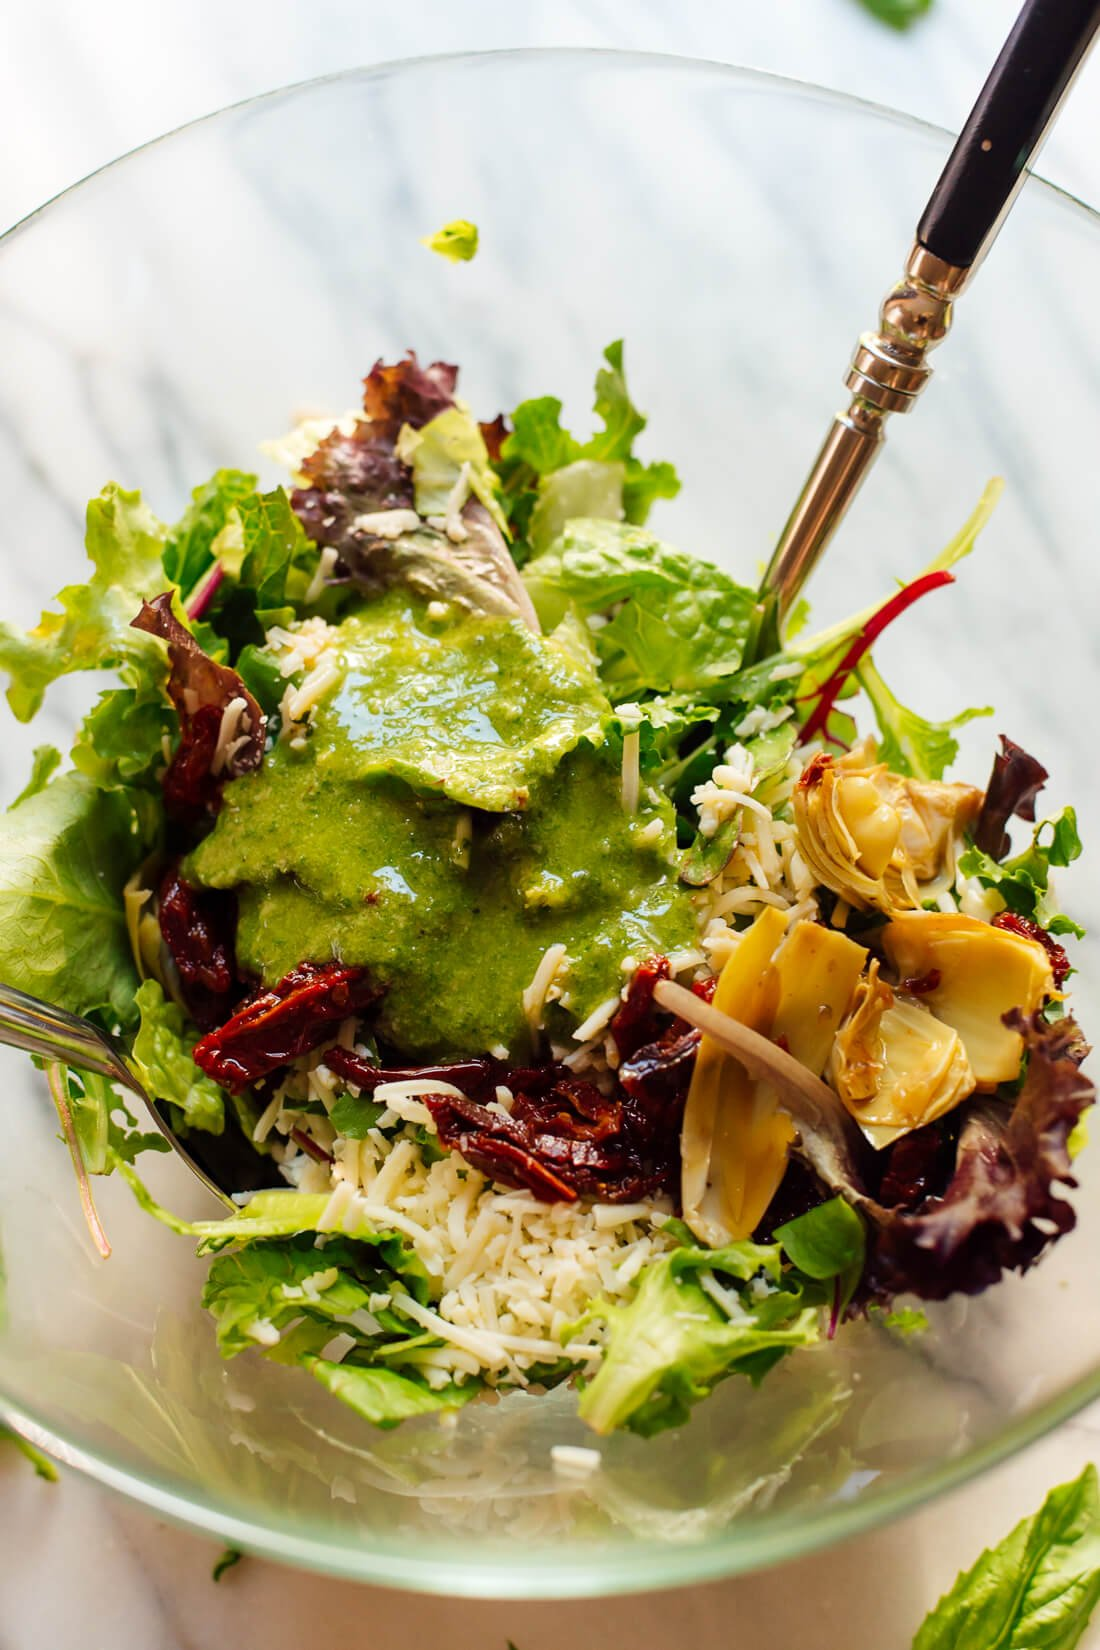 Basil Pesto Vinaigrette on salad